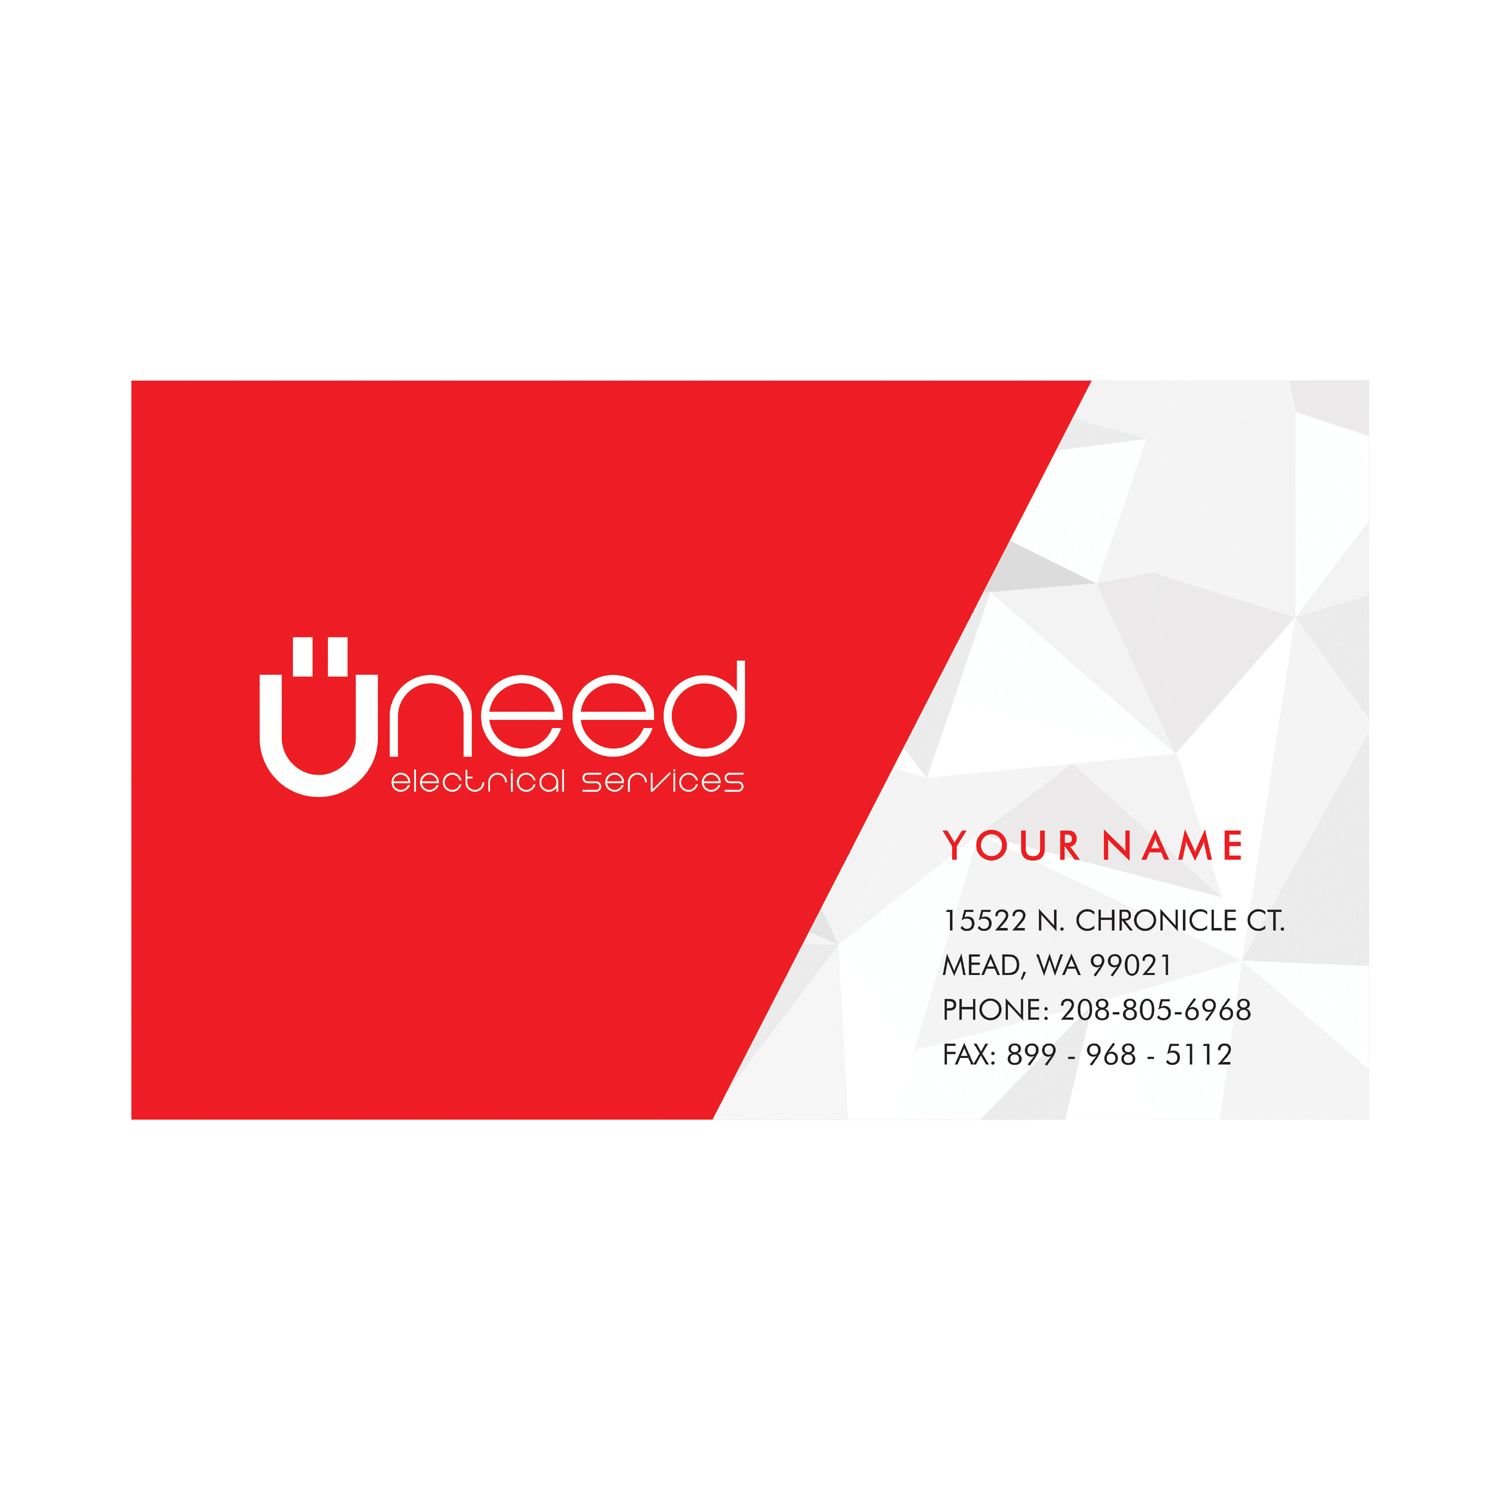 Serious professional logo and business card design for uneed logo and business card design by busam for logo and business card project design magicingreecefo Images